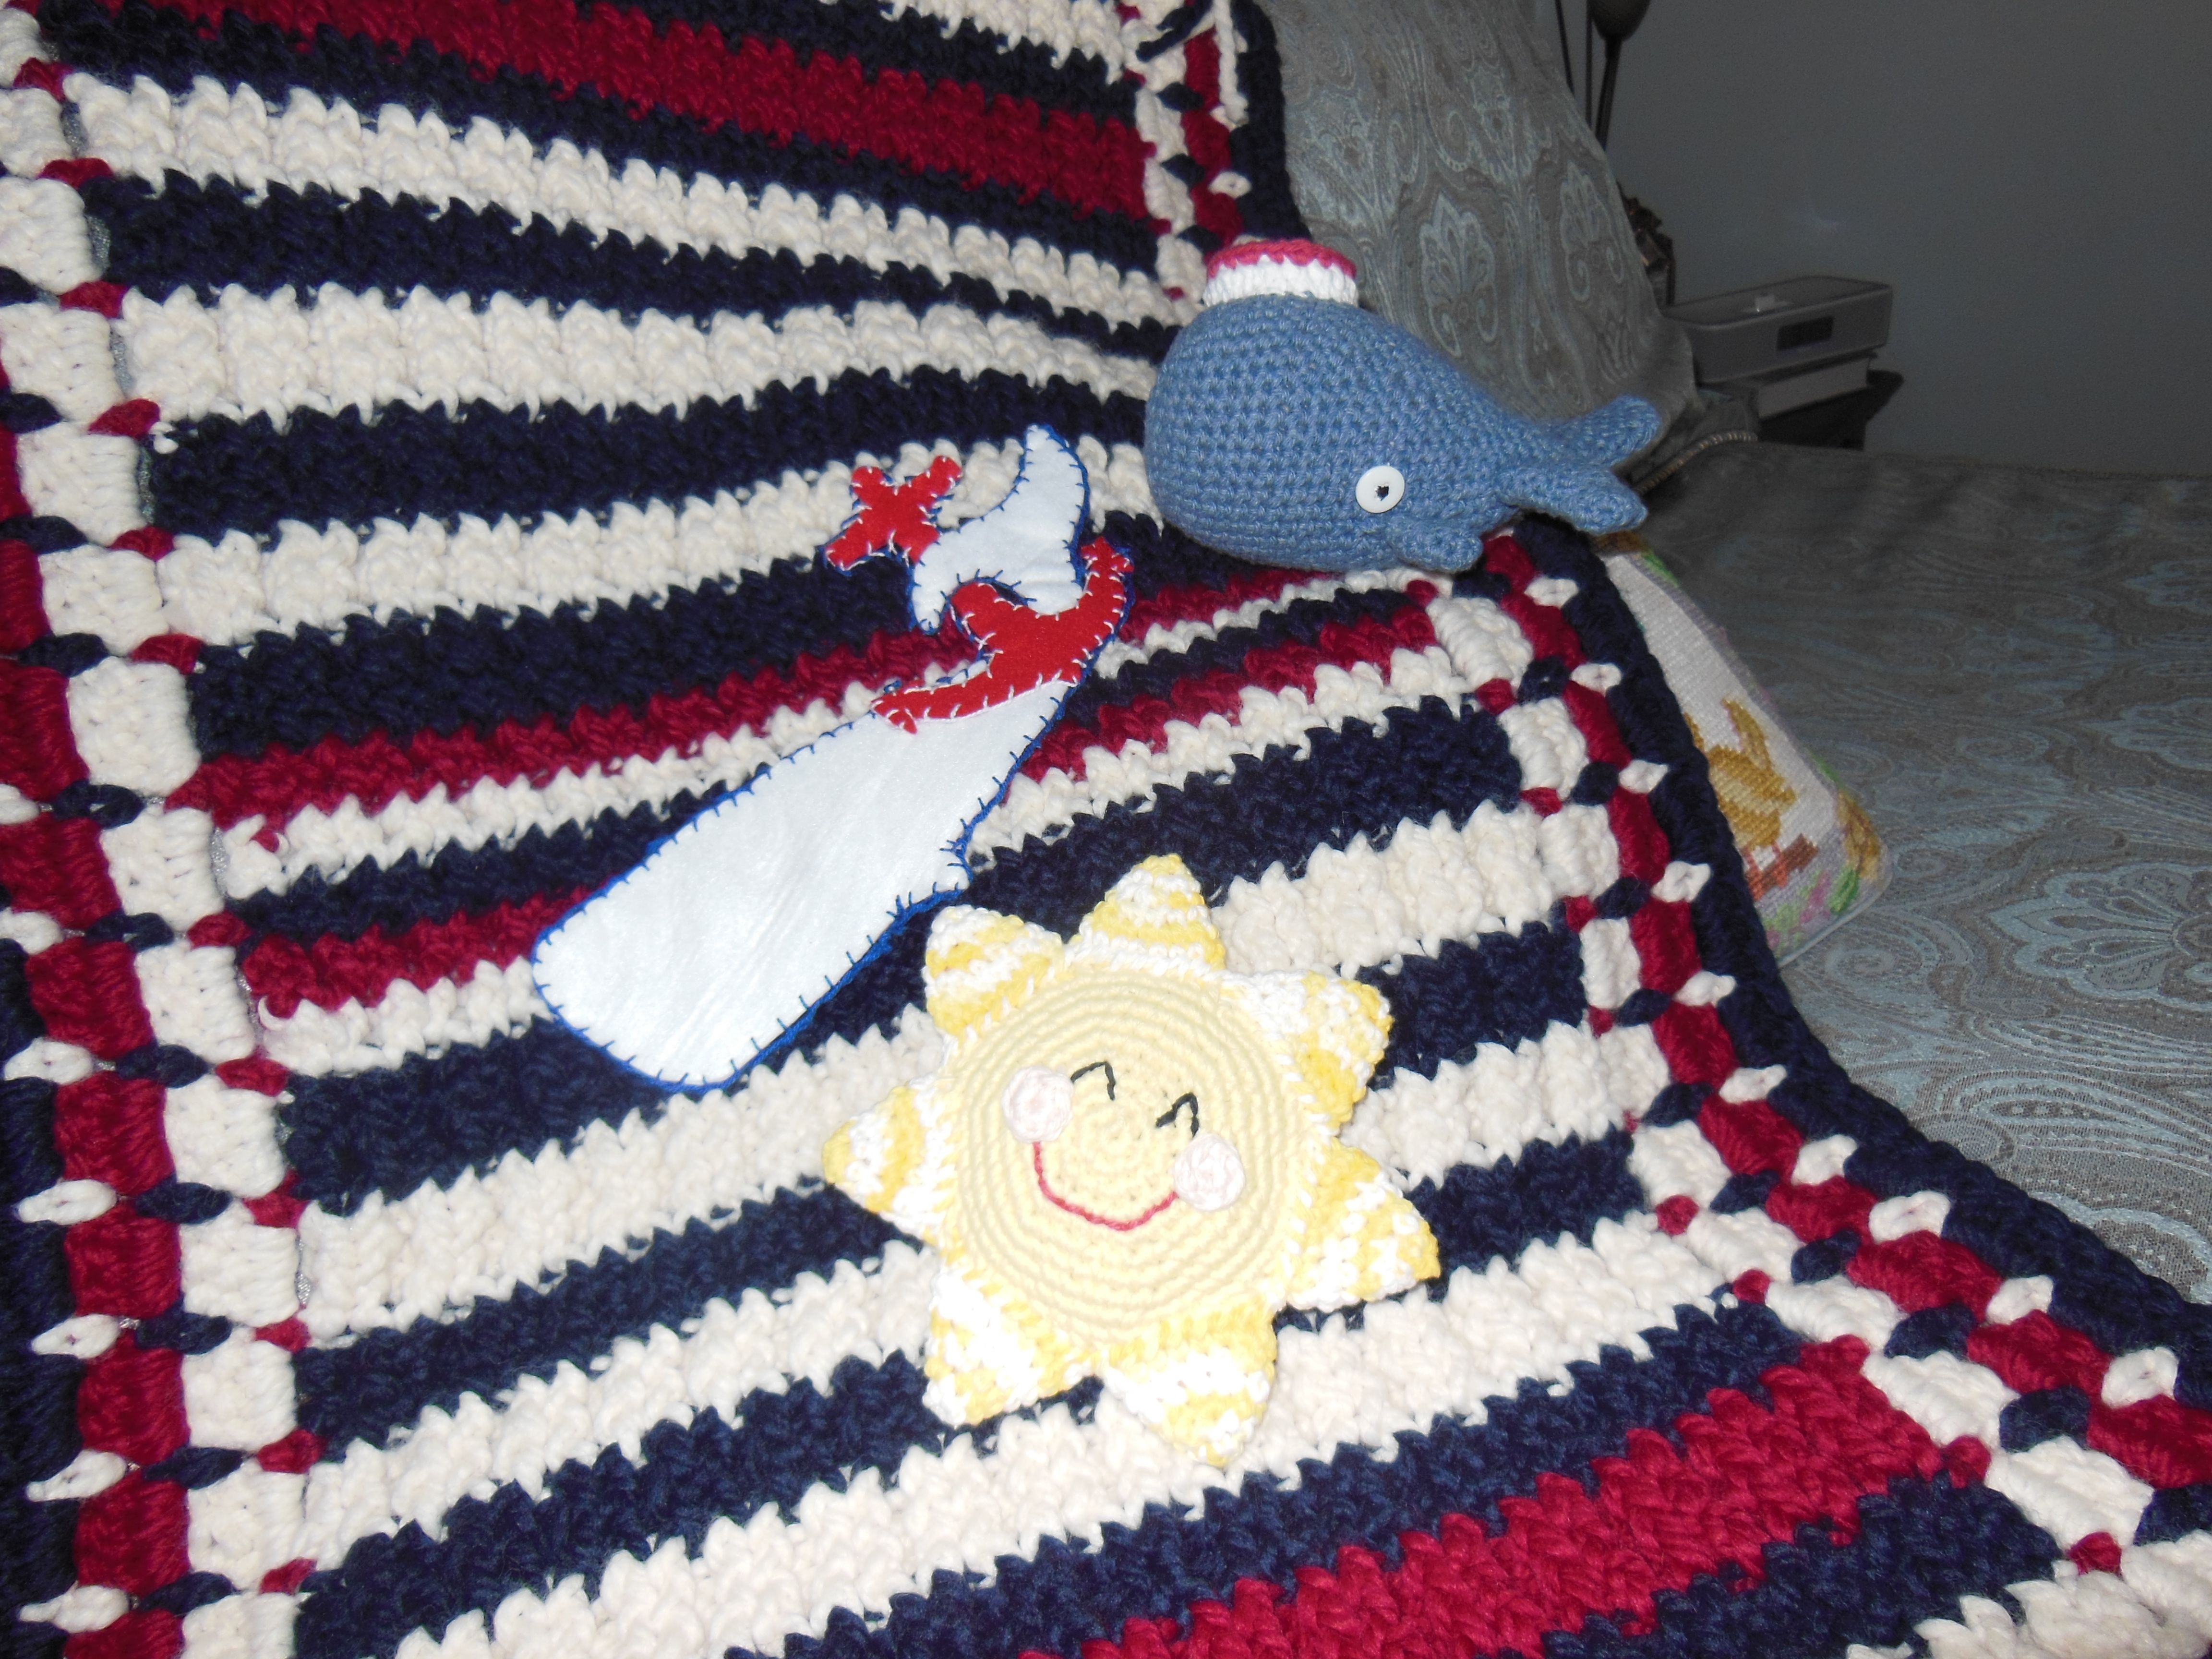 crocheted sunshine rattle, knitted and crocheted blanket and crocheted amigurumi whale